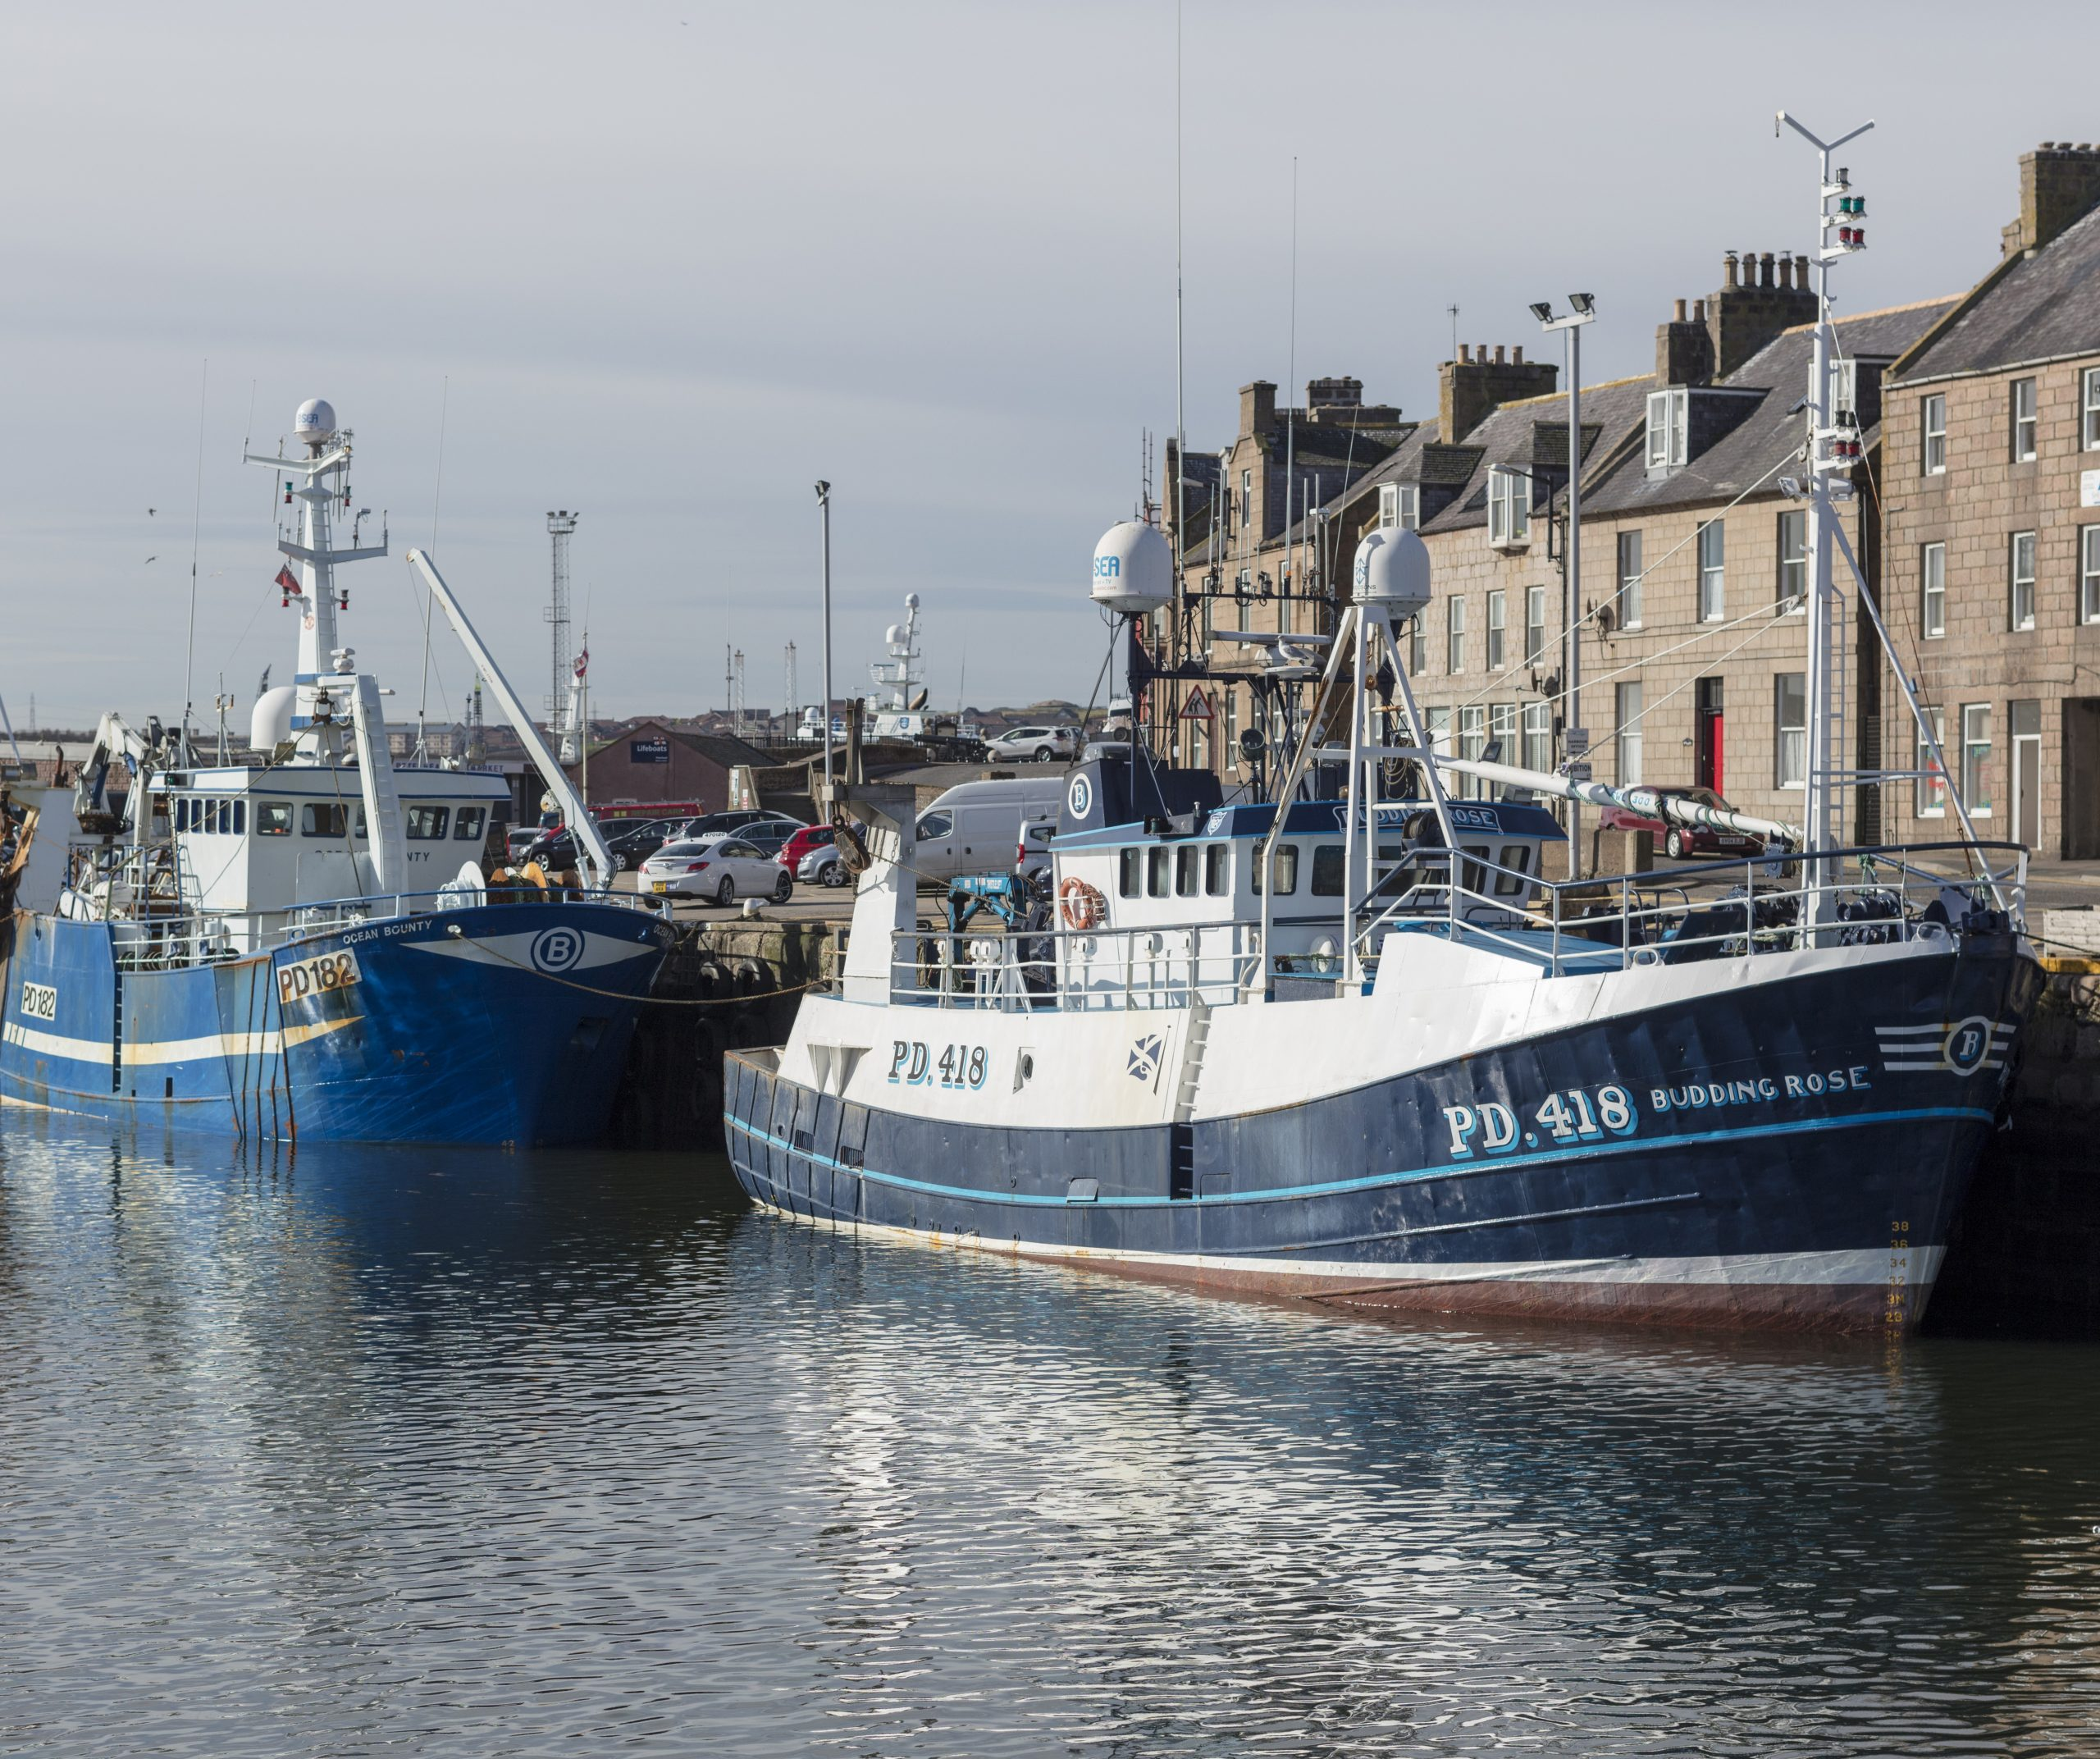 The UK-EU Fisheries Framework Agreement lays out the details on the future relationship between the two blocs when it comes to fishing